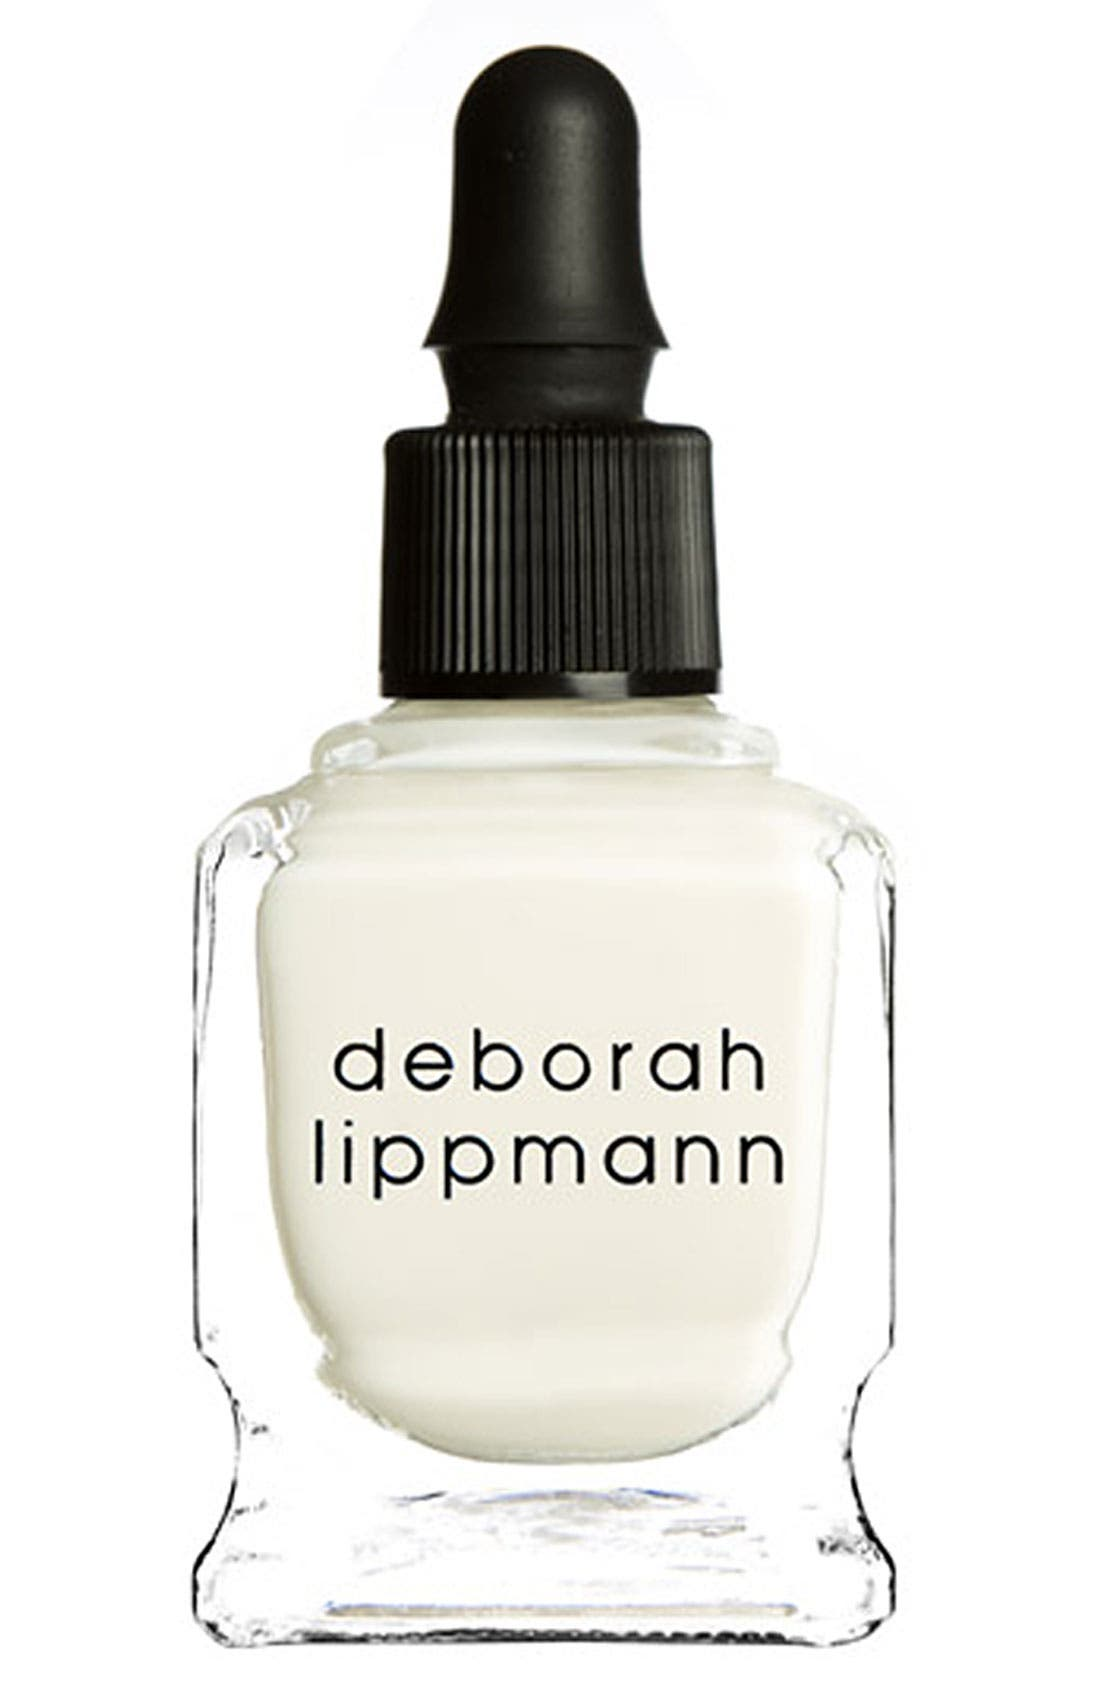 Deborah Lippmann Cuticle Remover with Lanolin